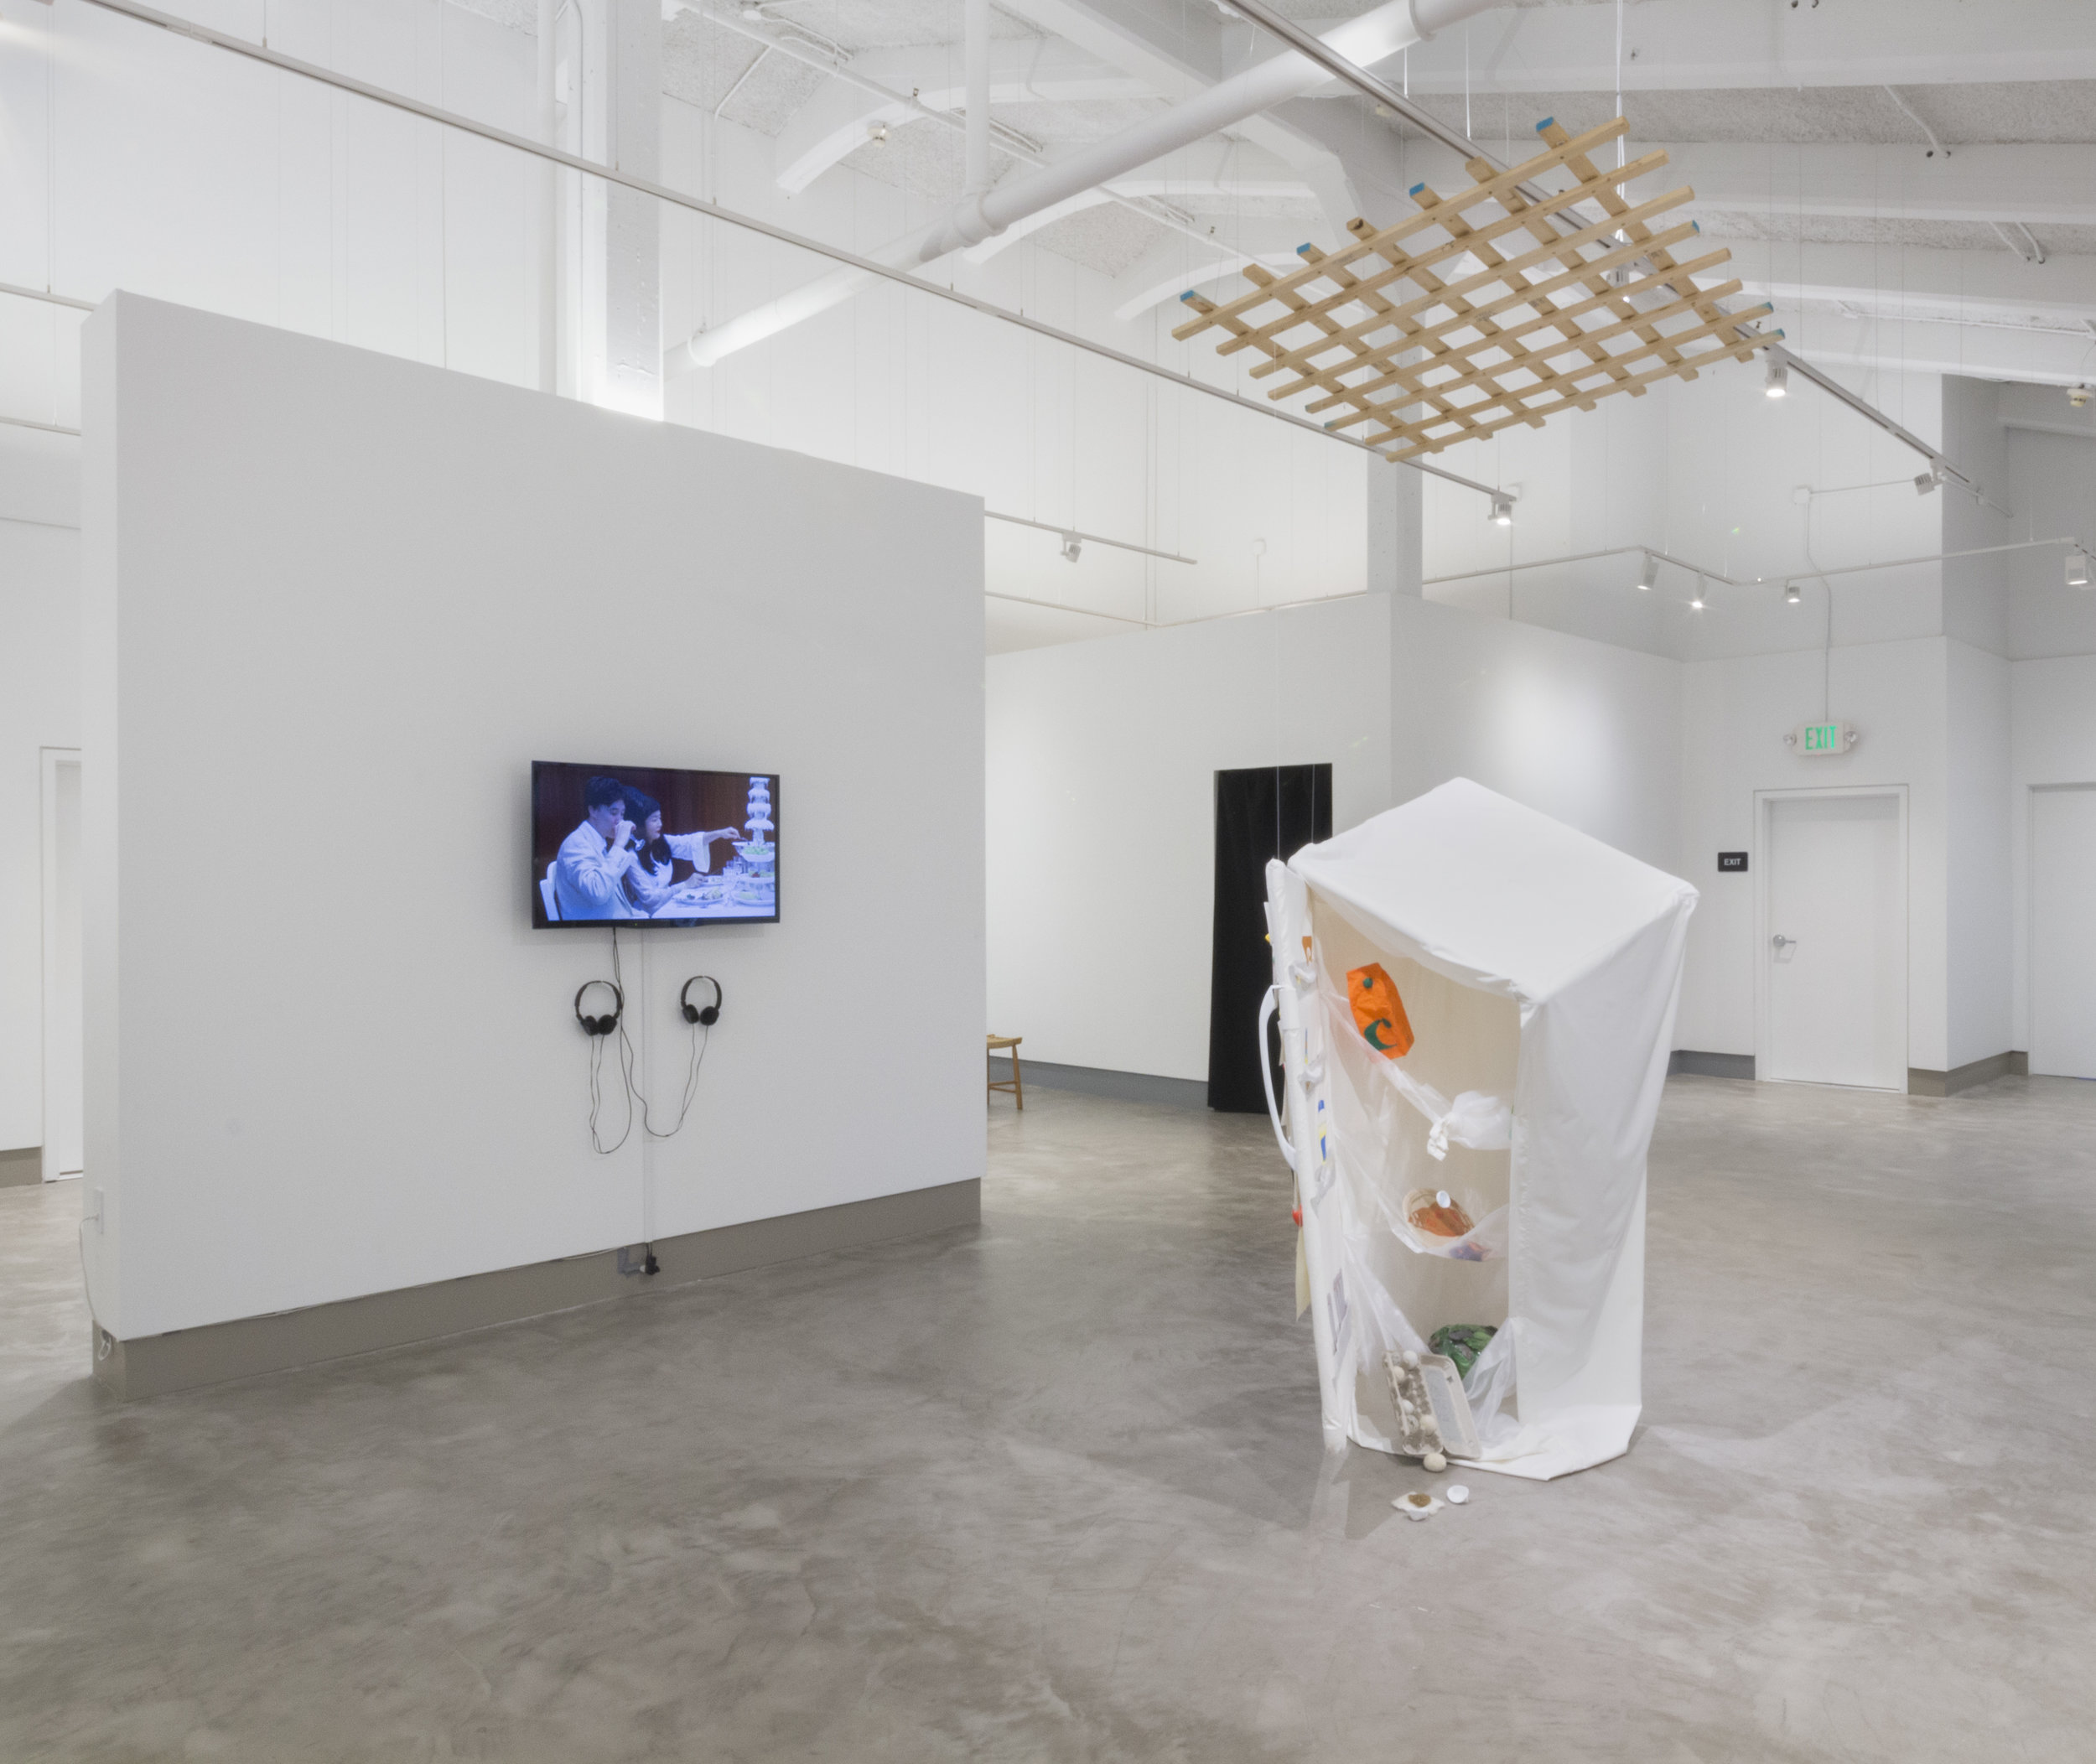 """""""Purging"""" (Exhibition view at Embark Gallery, San Francisco, CA), 2016, Screen-printed fabric, cardboard, milk jug, clay, felted wool, ink thread, pvc, monofilament, fridge light, Dimensions variable"""